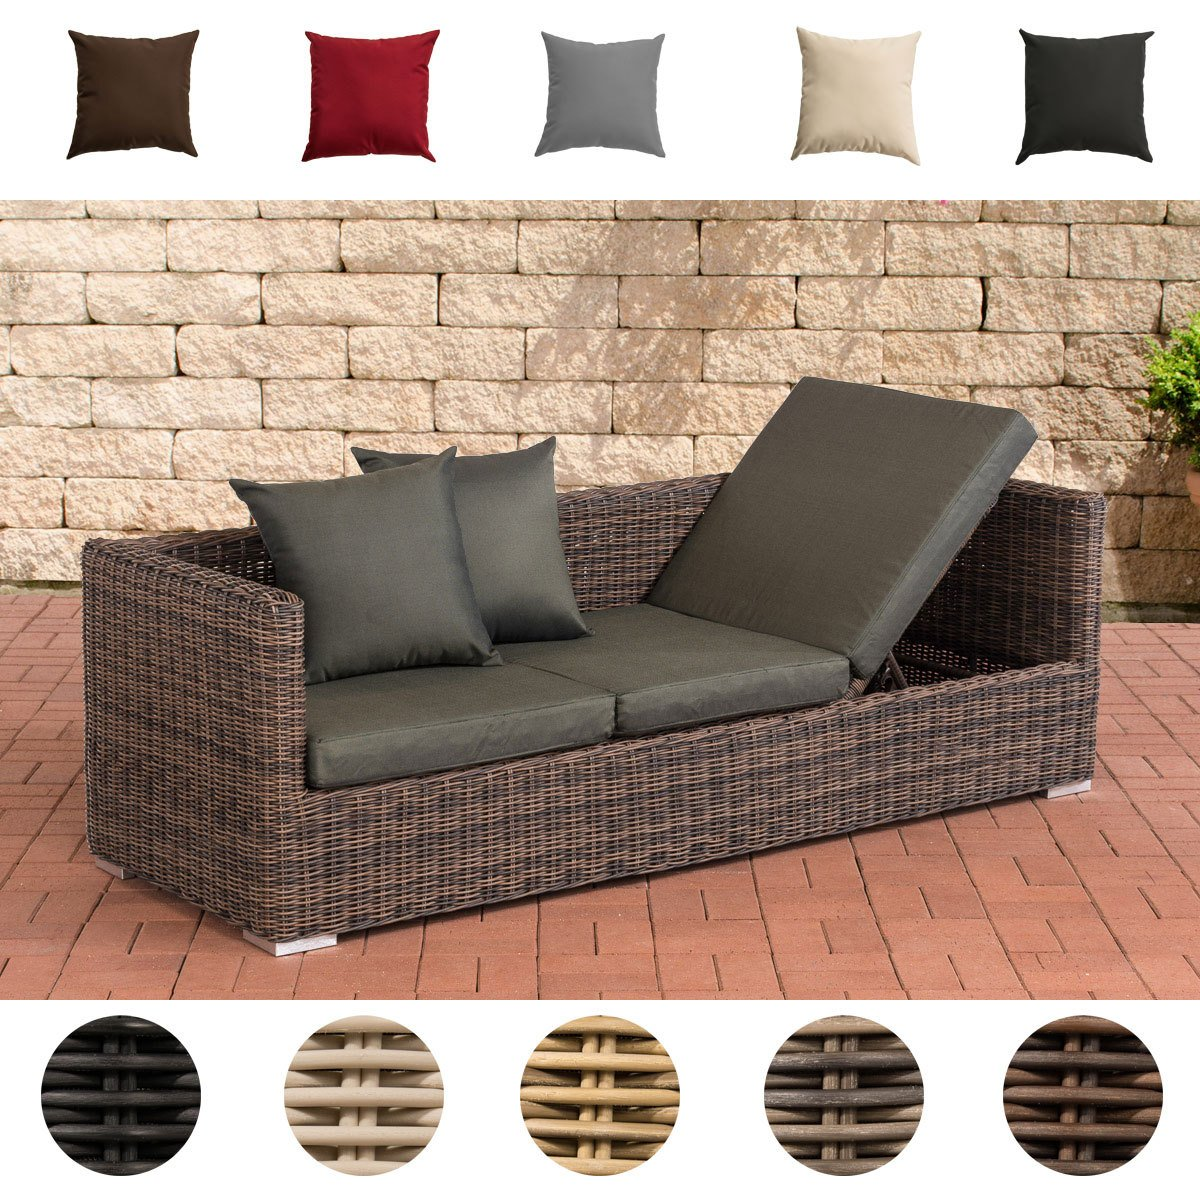 CLP flexibles Luxus Poly Rattan 3er Lounge Sofa SOLANO 5mm